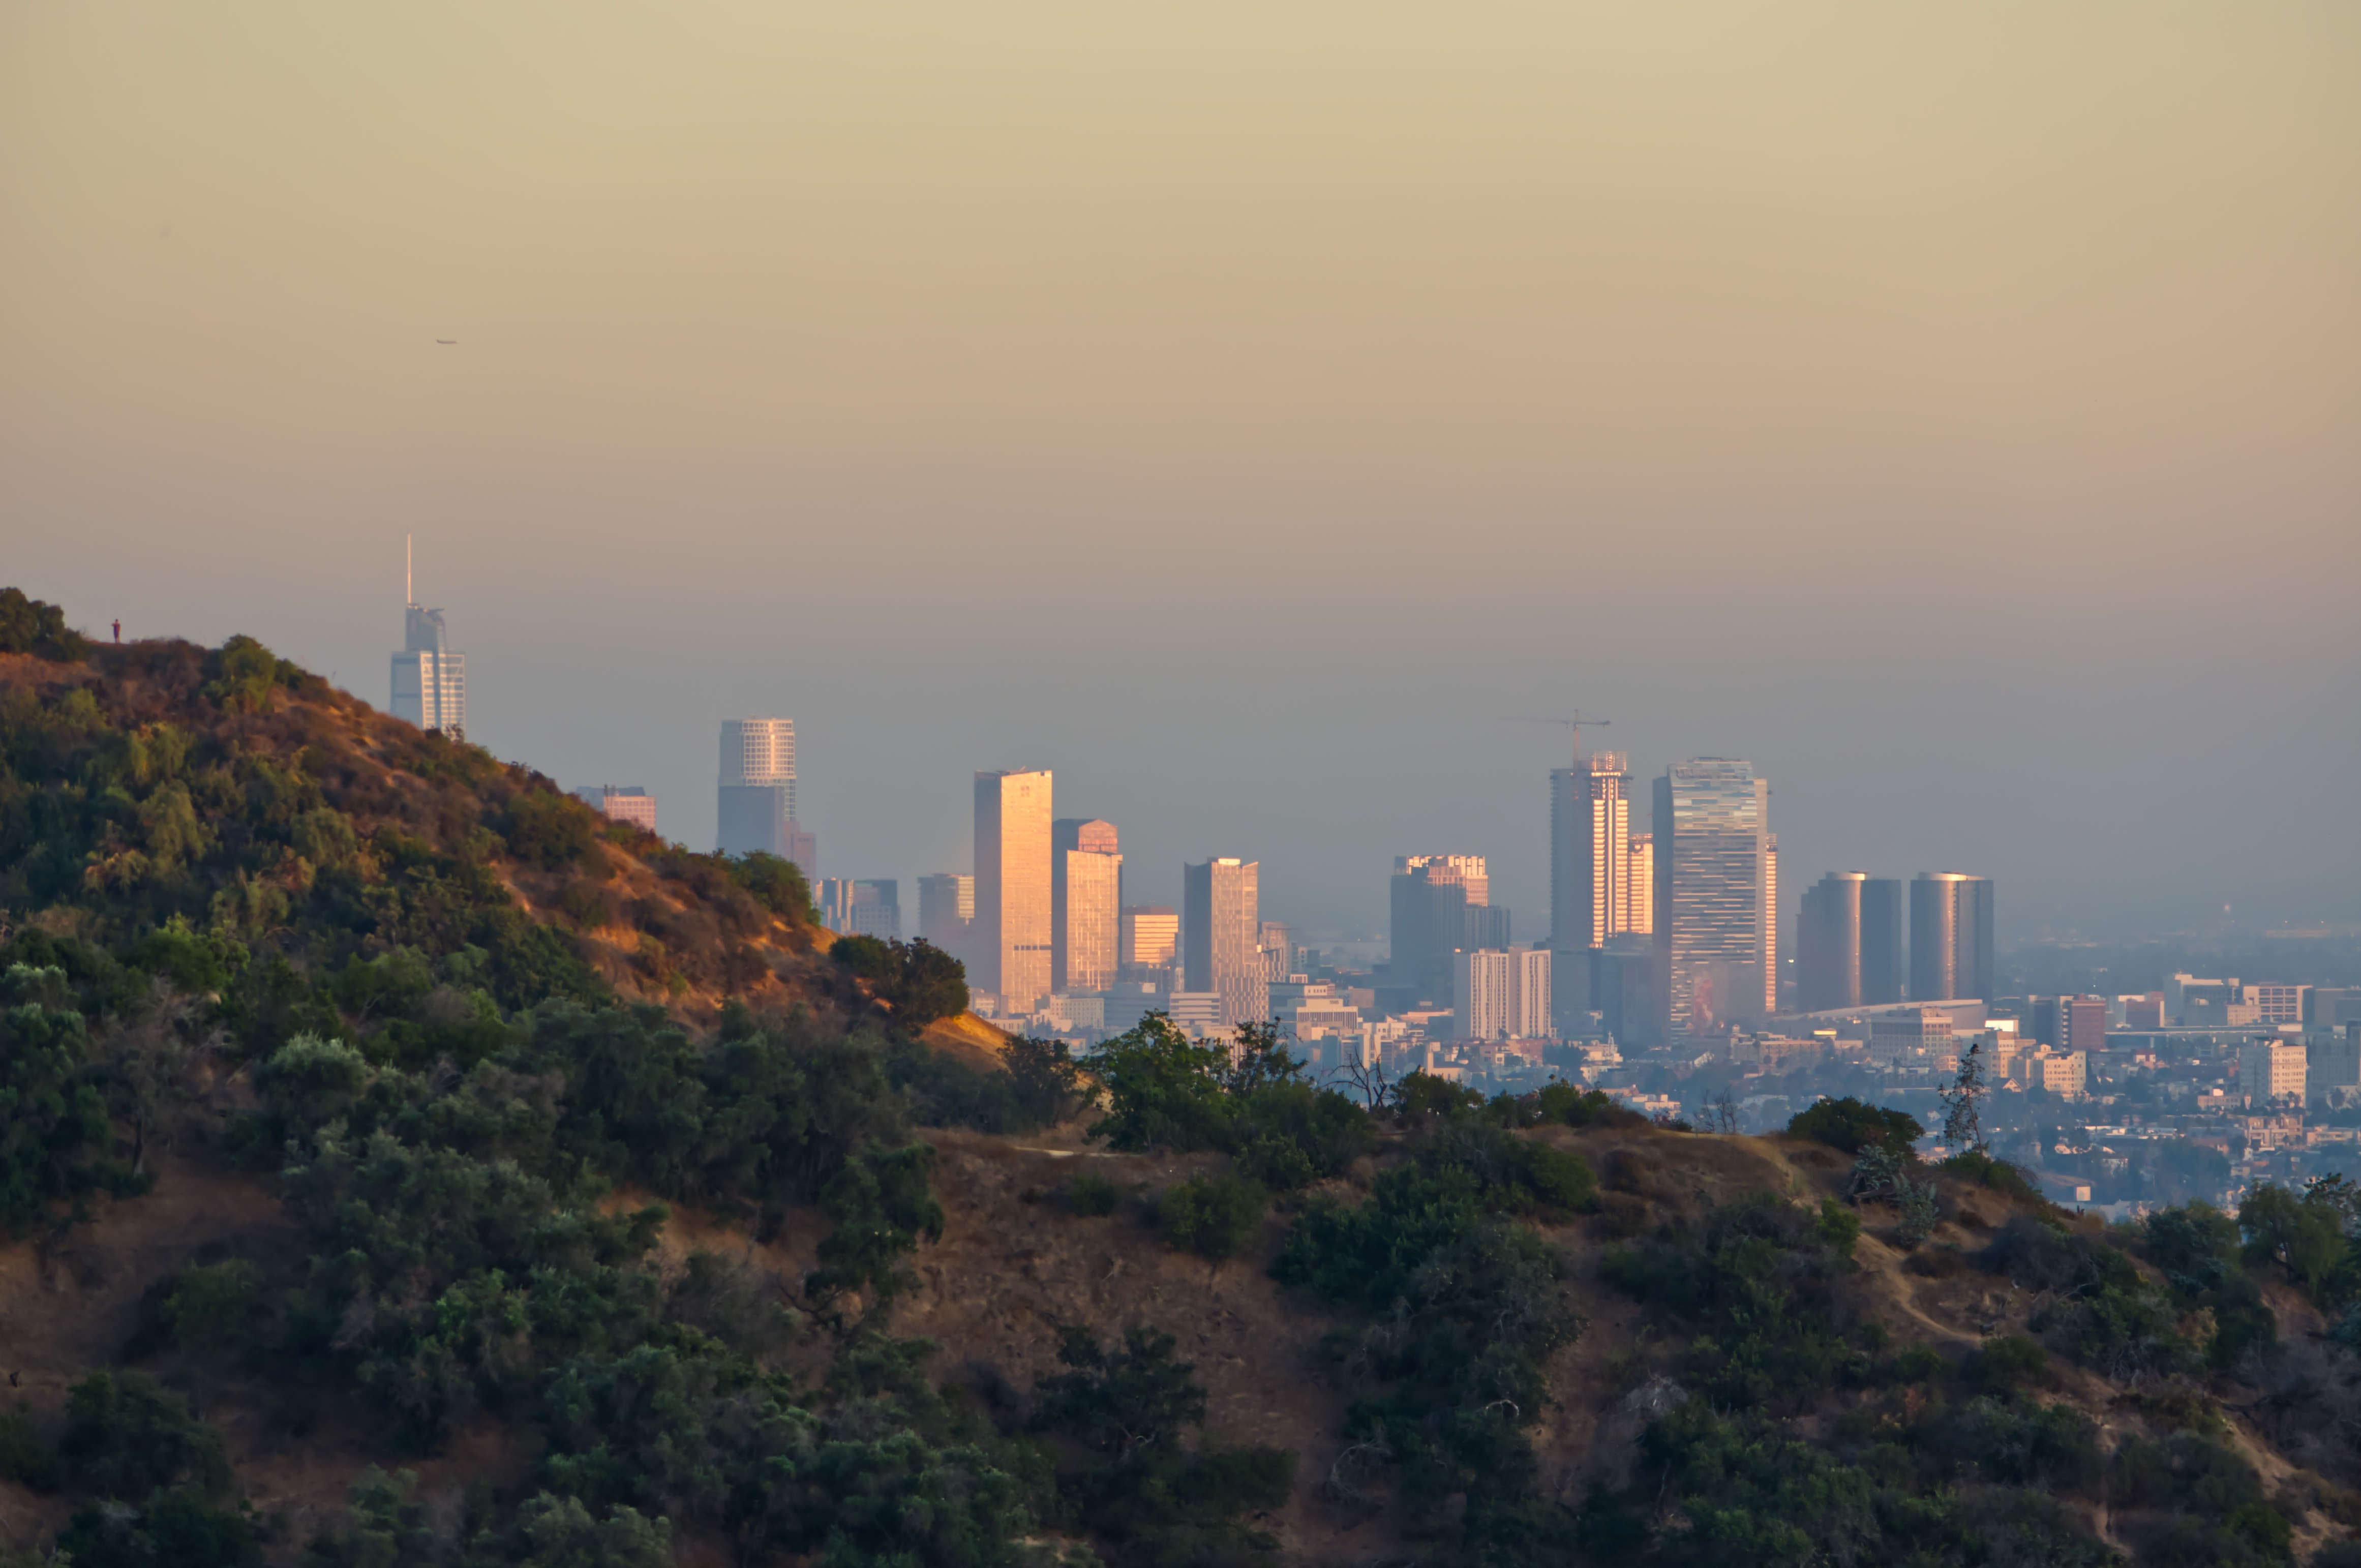 Downtown Los Angeles at dusk, seen from the trail in Griffith Park